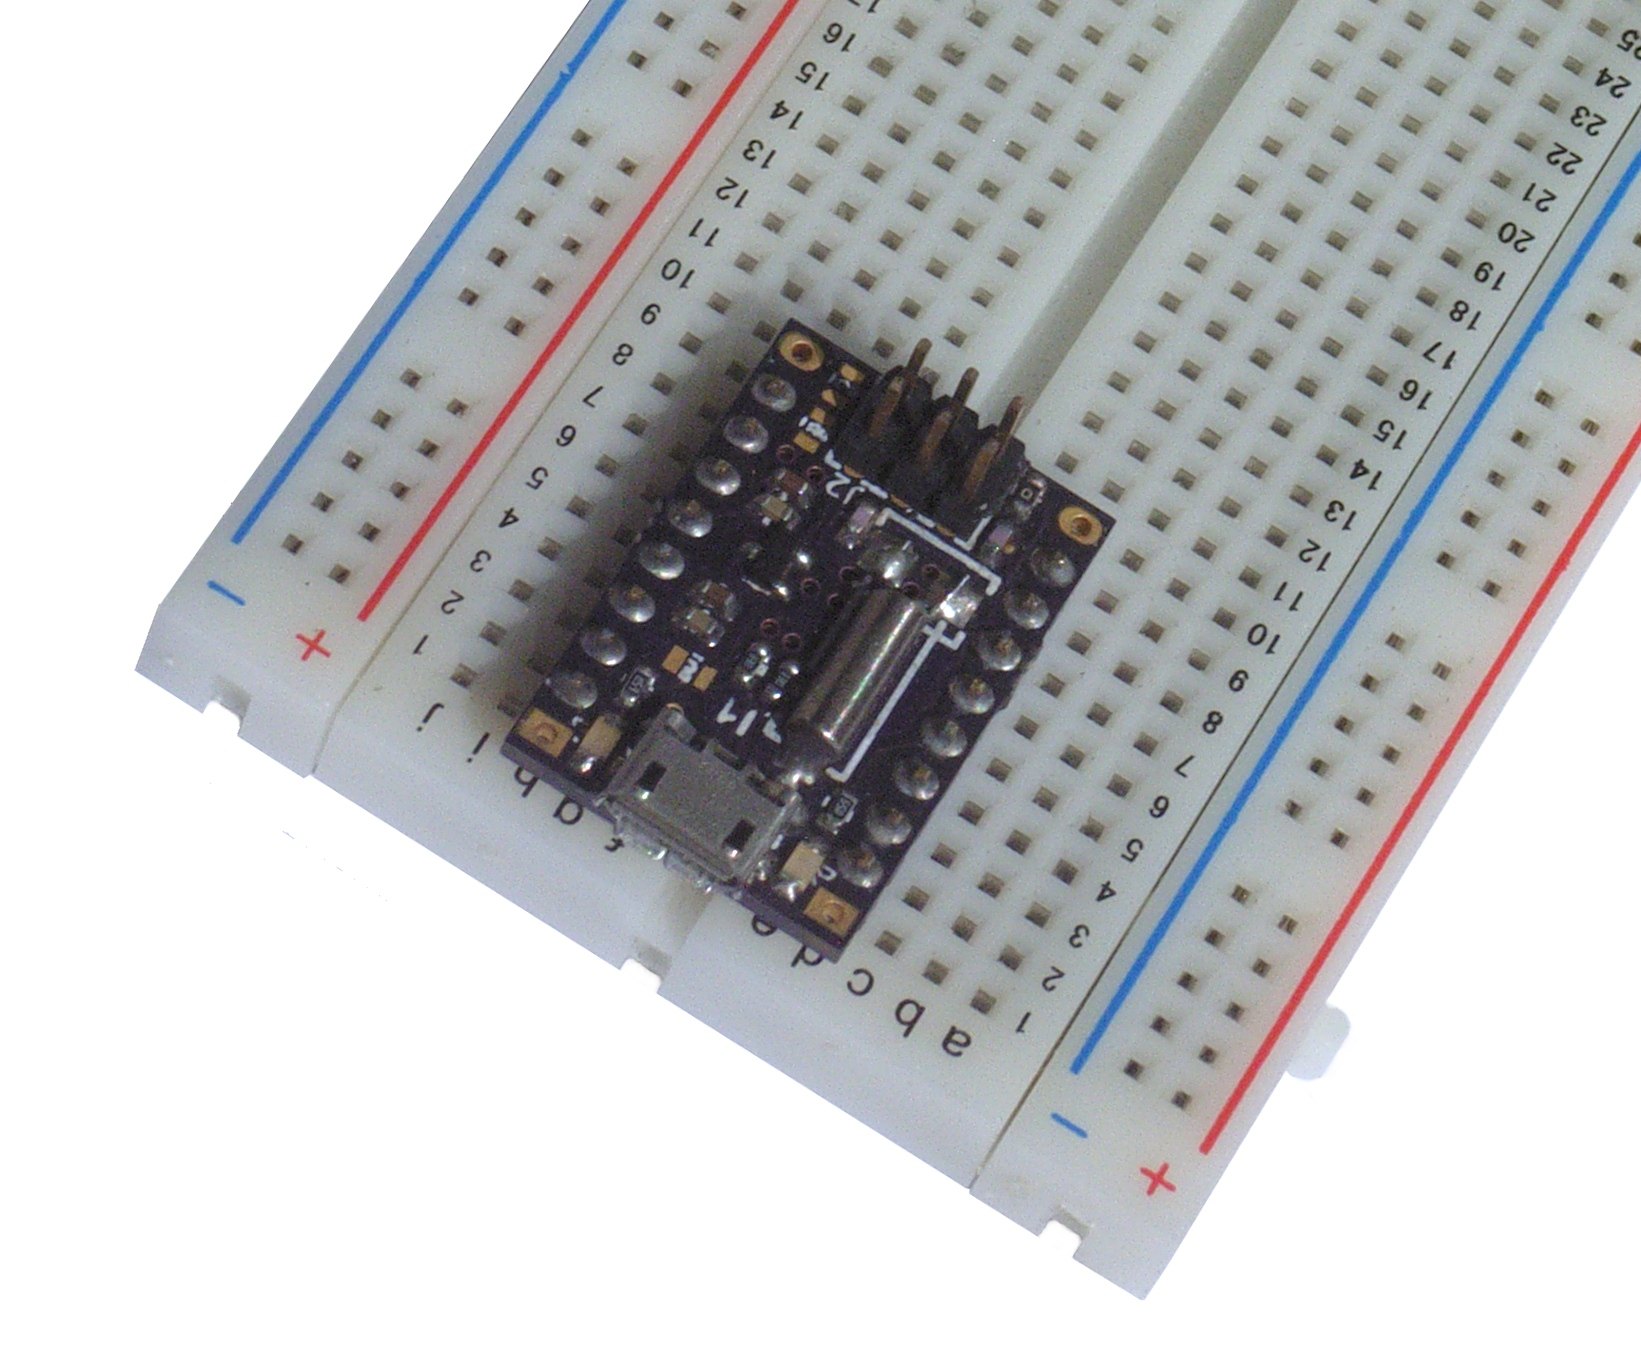 microjs on a breadboard